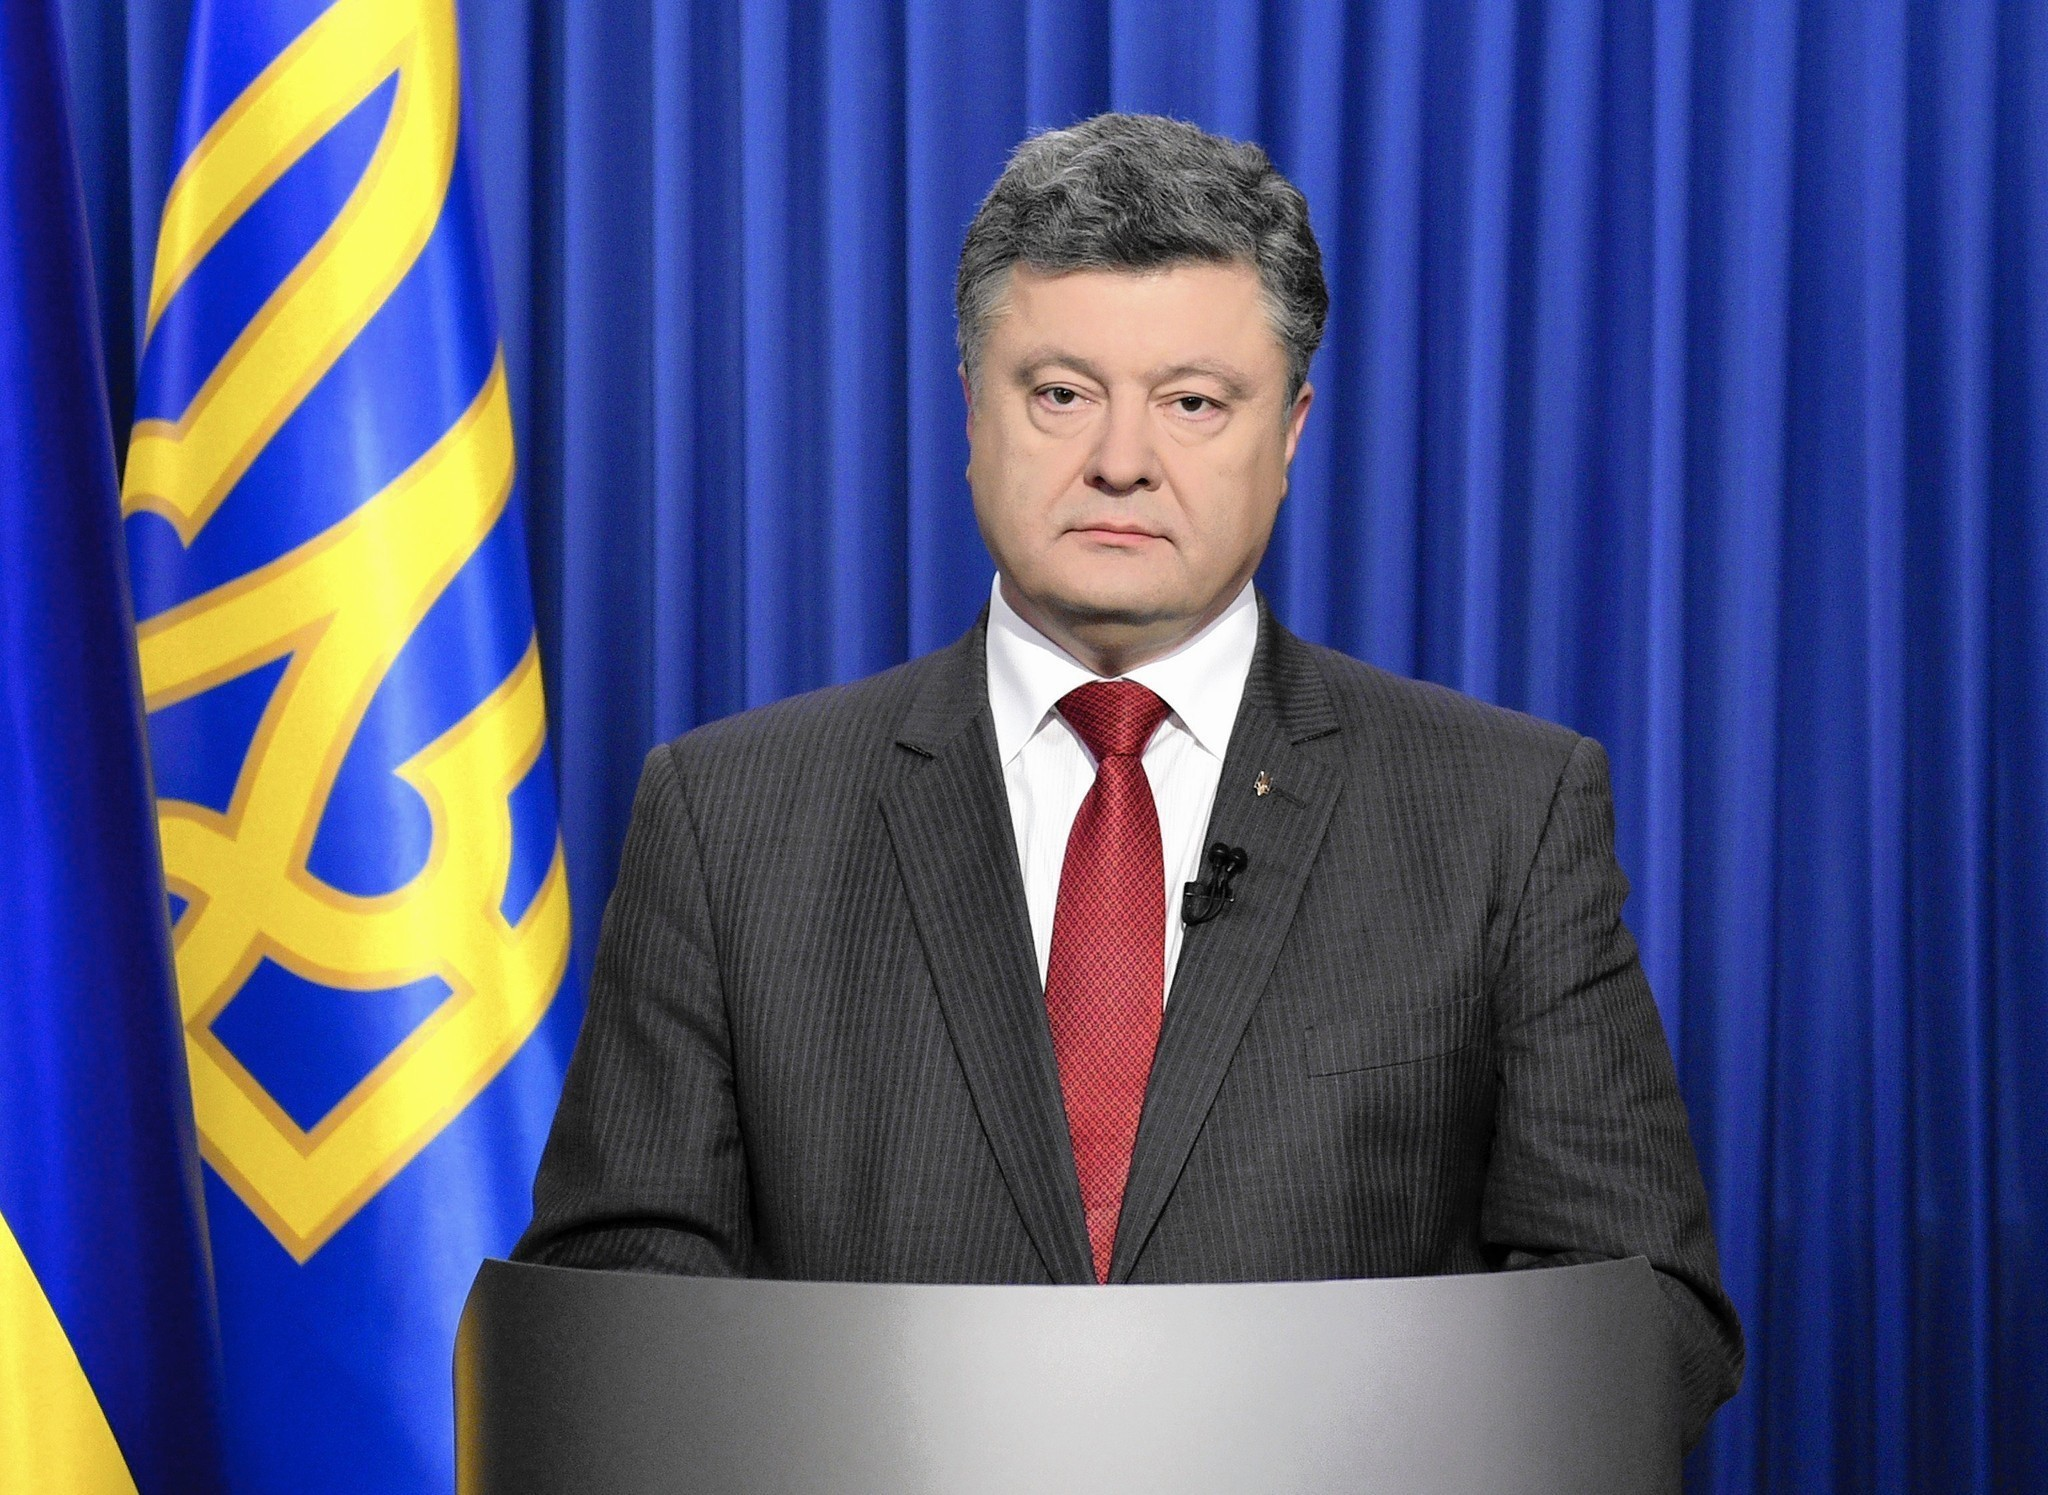 As Ukraine elects a new parliament, national divisions persist